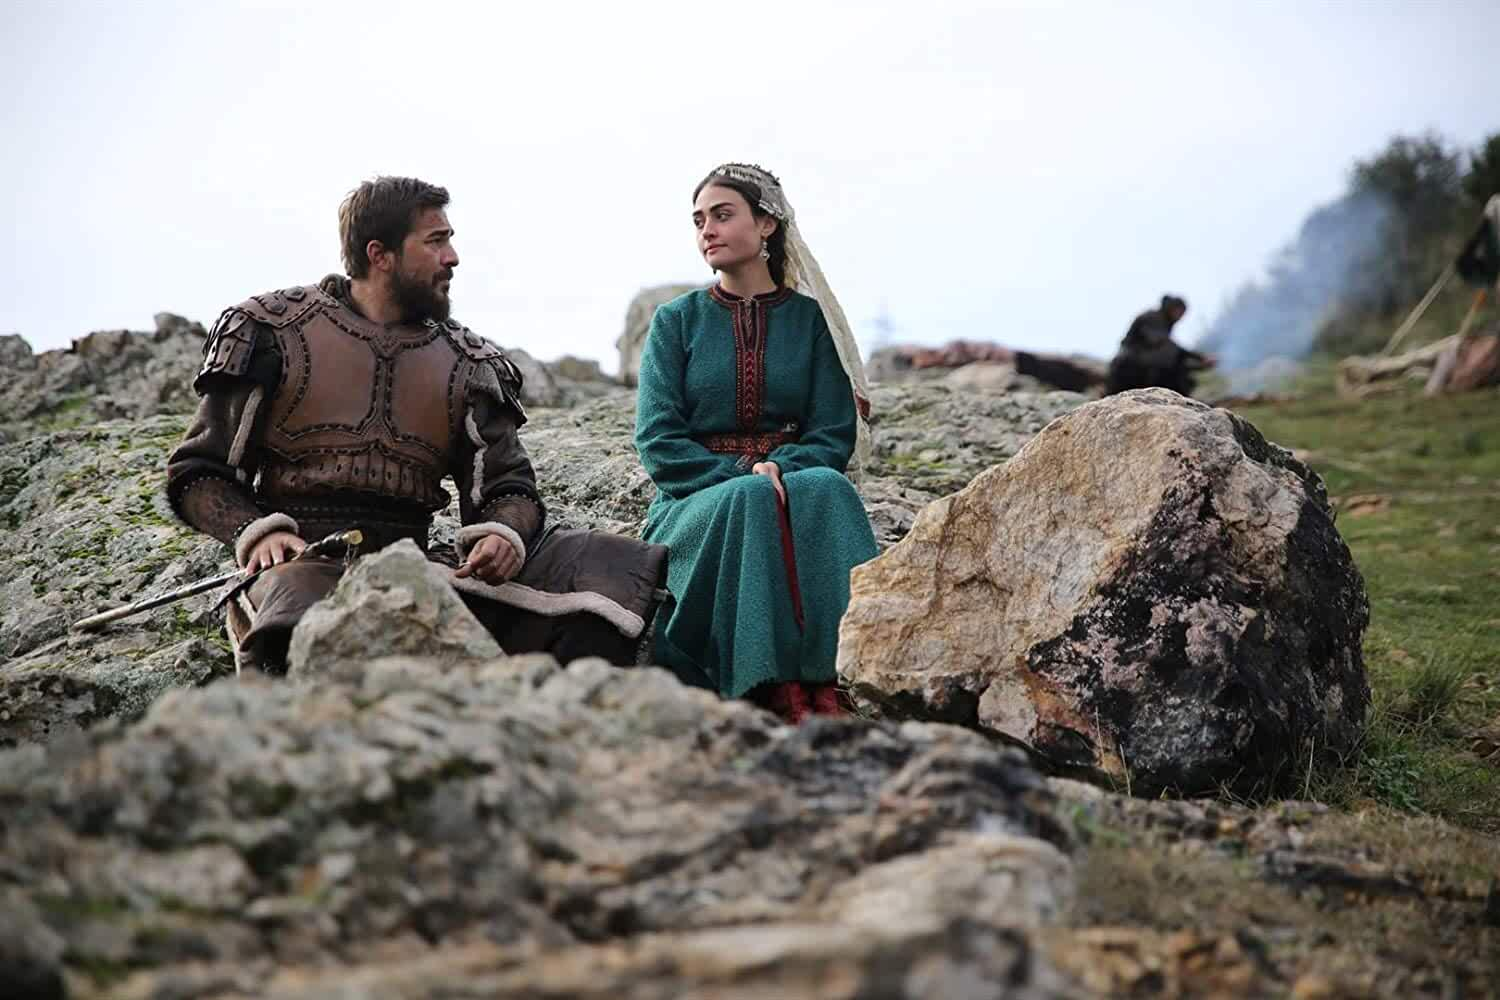 Engin Altan Düzyatan and Esra Bilgic in Dirilis: Ertugrul (2014)